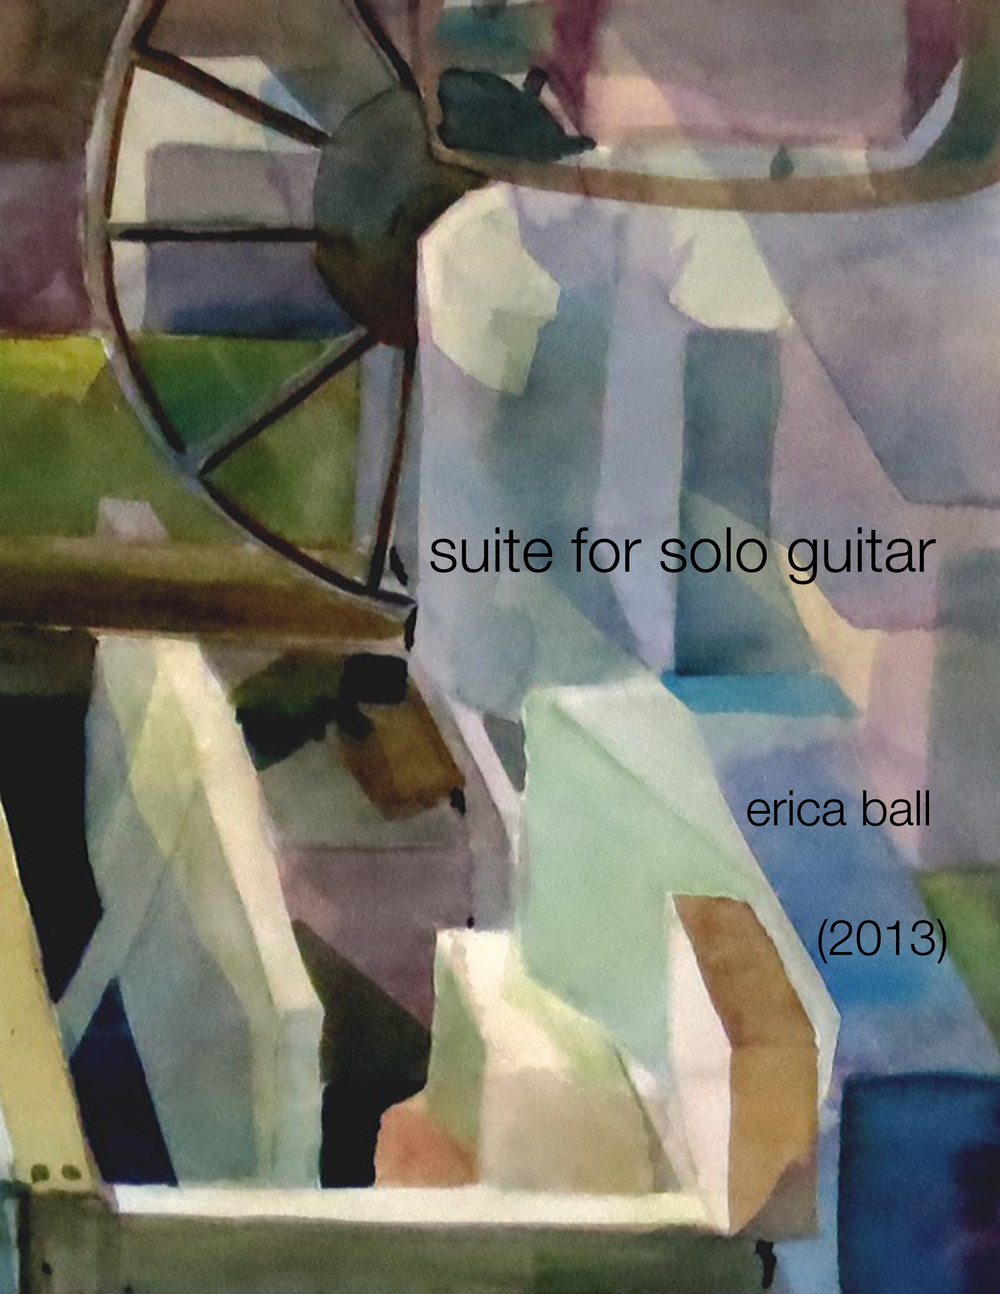 suite for solo guitar